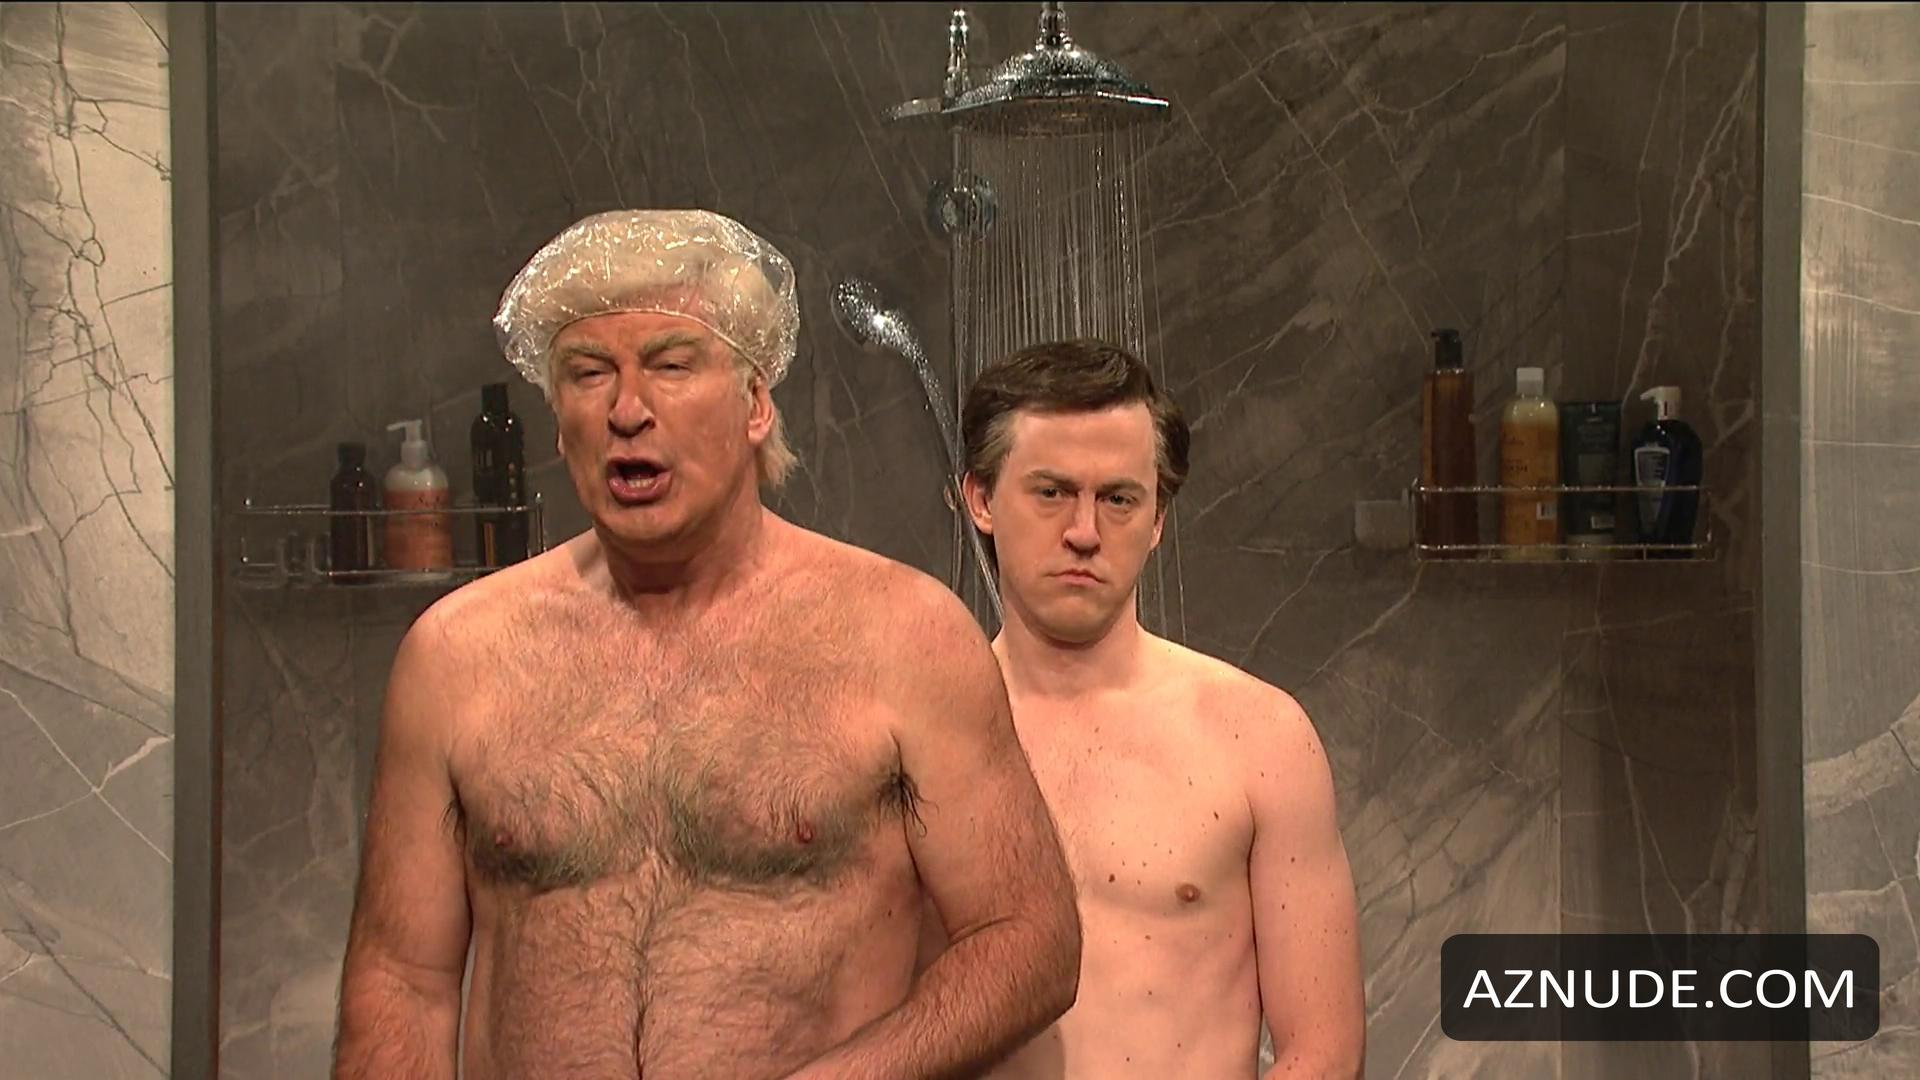 Apologise, but, alec baldwin nude